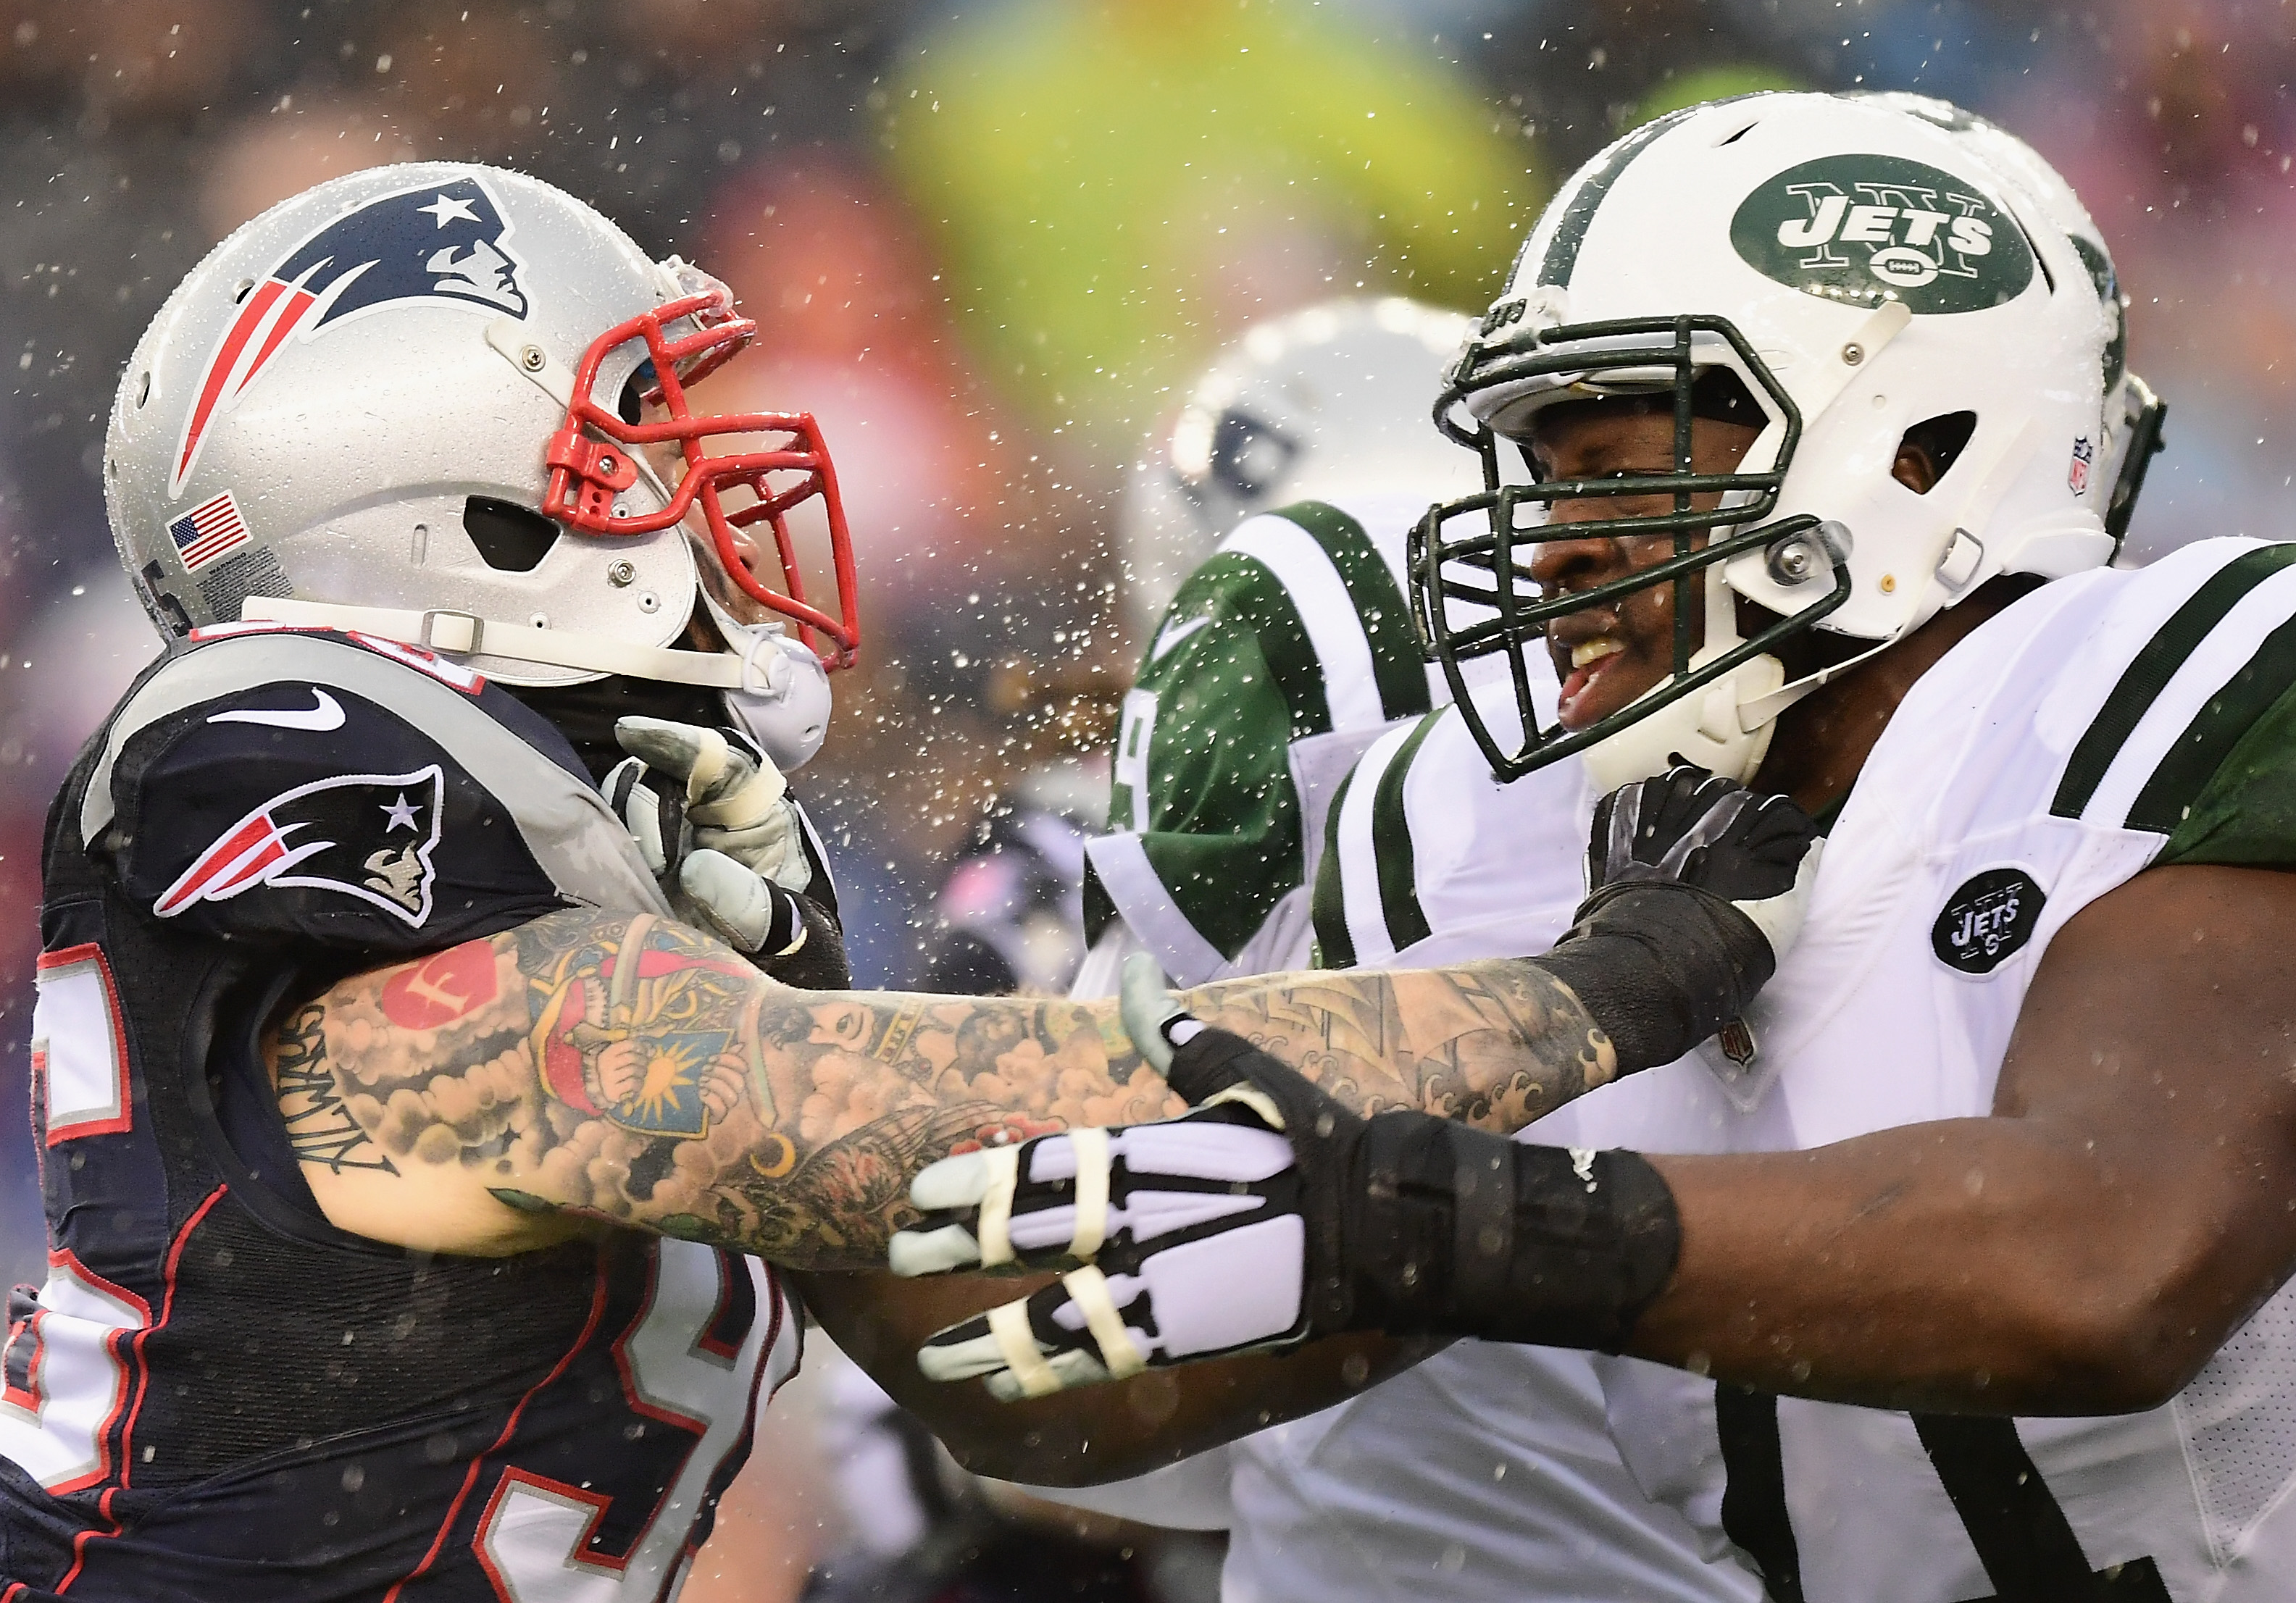 FOXBORO, MA - DECEMBER 24: Chris Long #95 of the New England Patriots blocks Ben Ijalana #71 of the New York Jets during the first quarter of a game at Gillette Stadium on December 24, 2016 in Foxboro, Massachusetts.  (Photo by Billie Weiss/Getty Images)